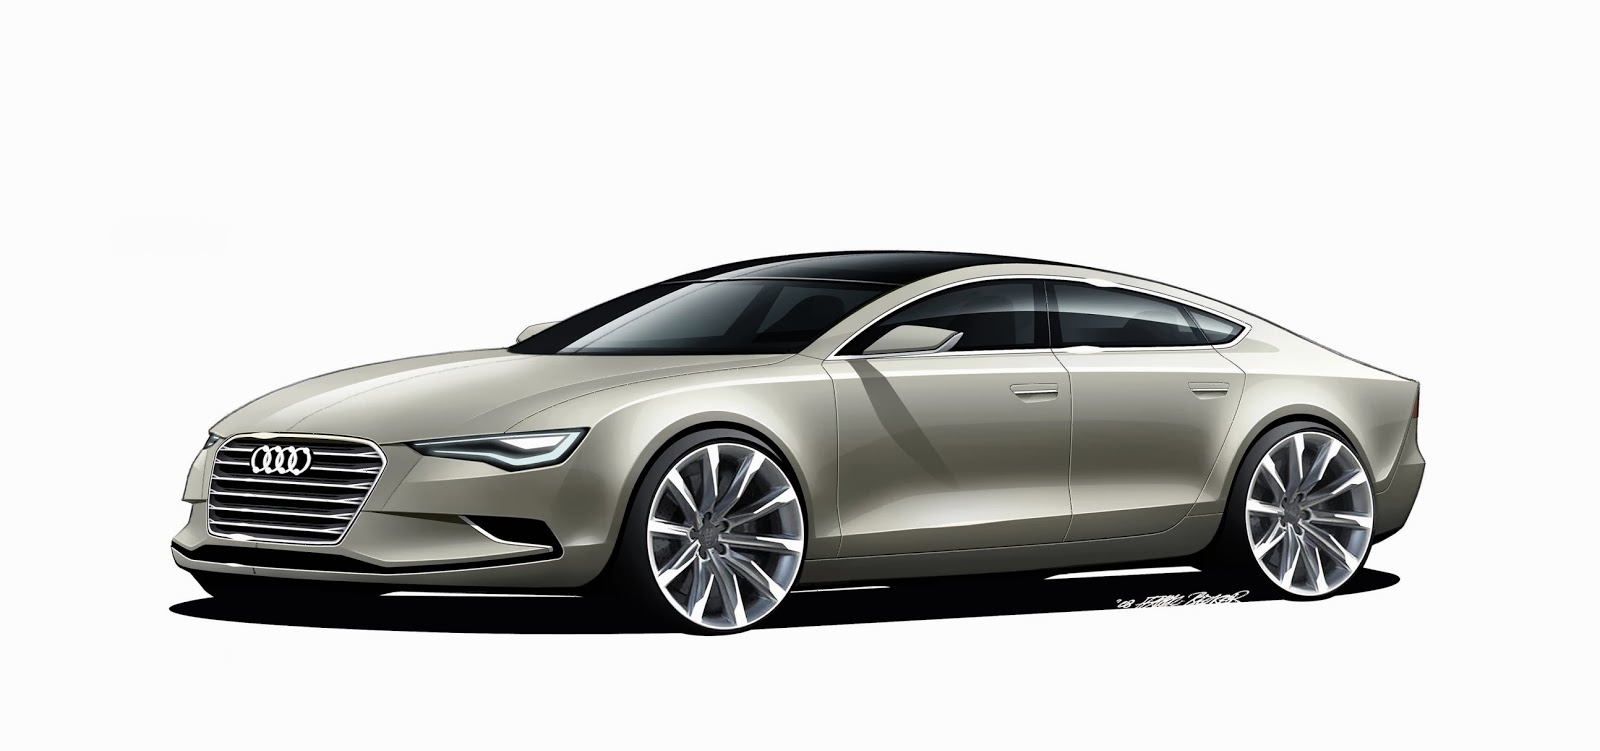 2015 Audi A9 Review HD Wallpapers Download free images and photos [musssic.tk]